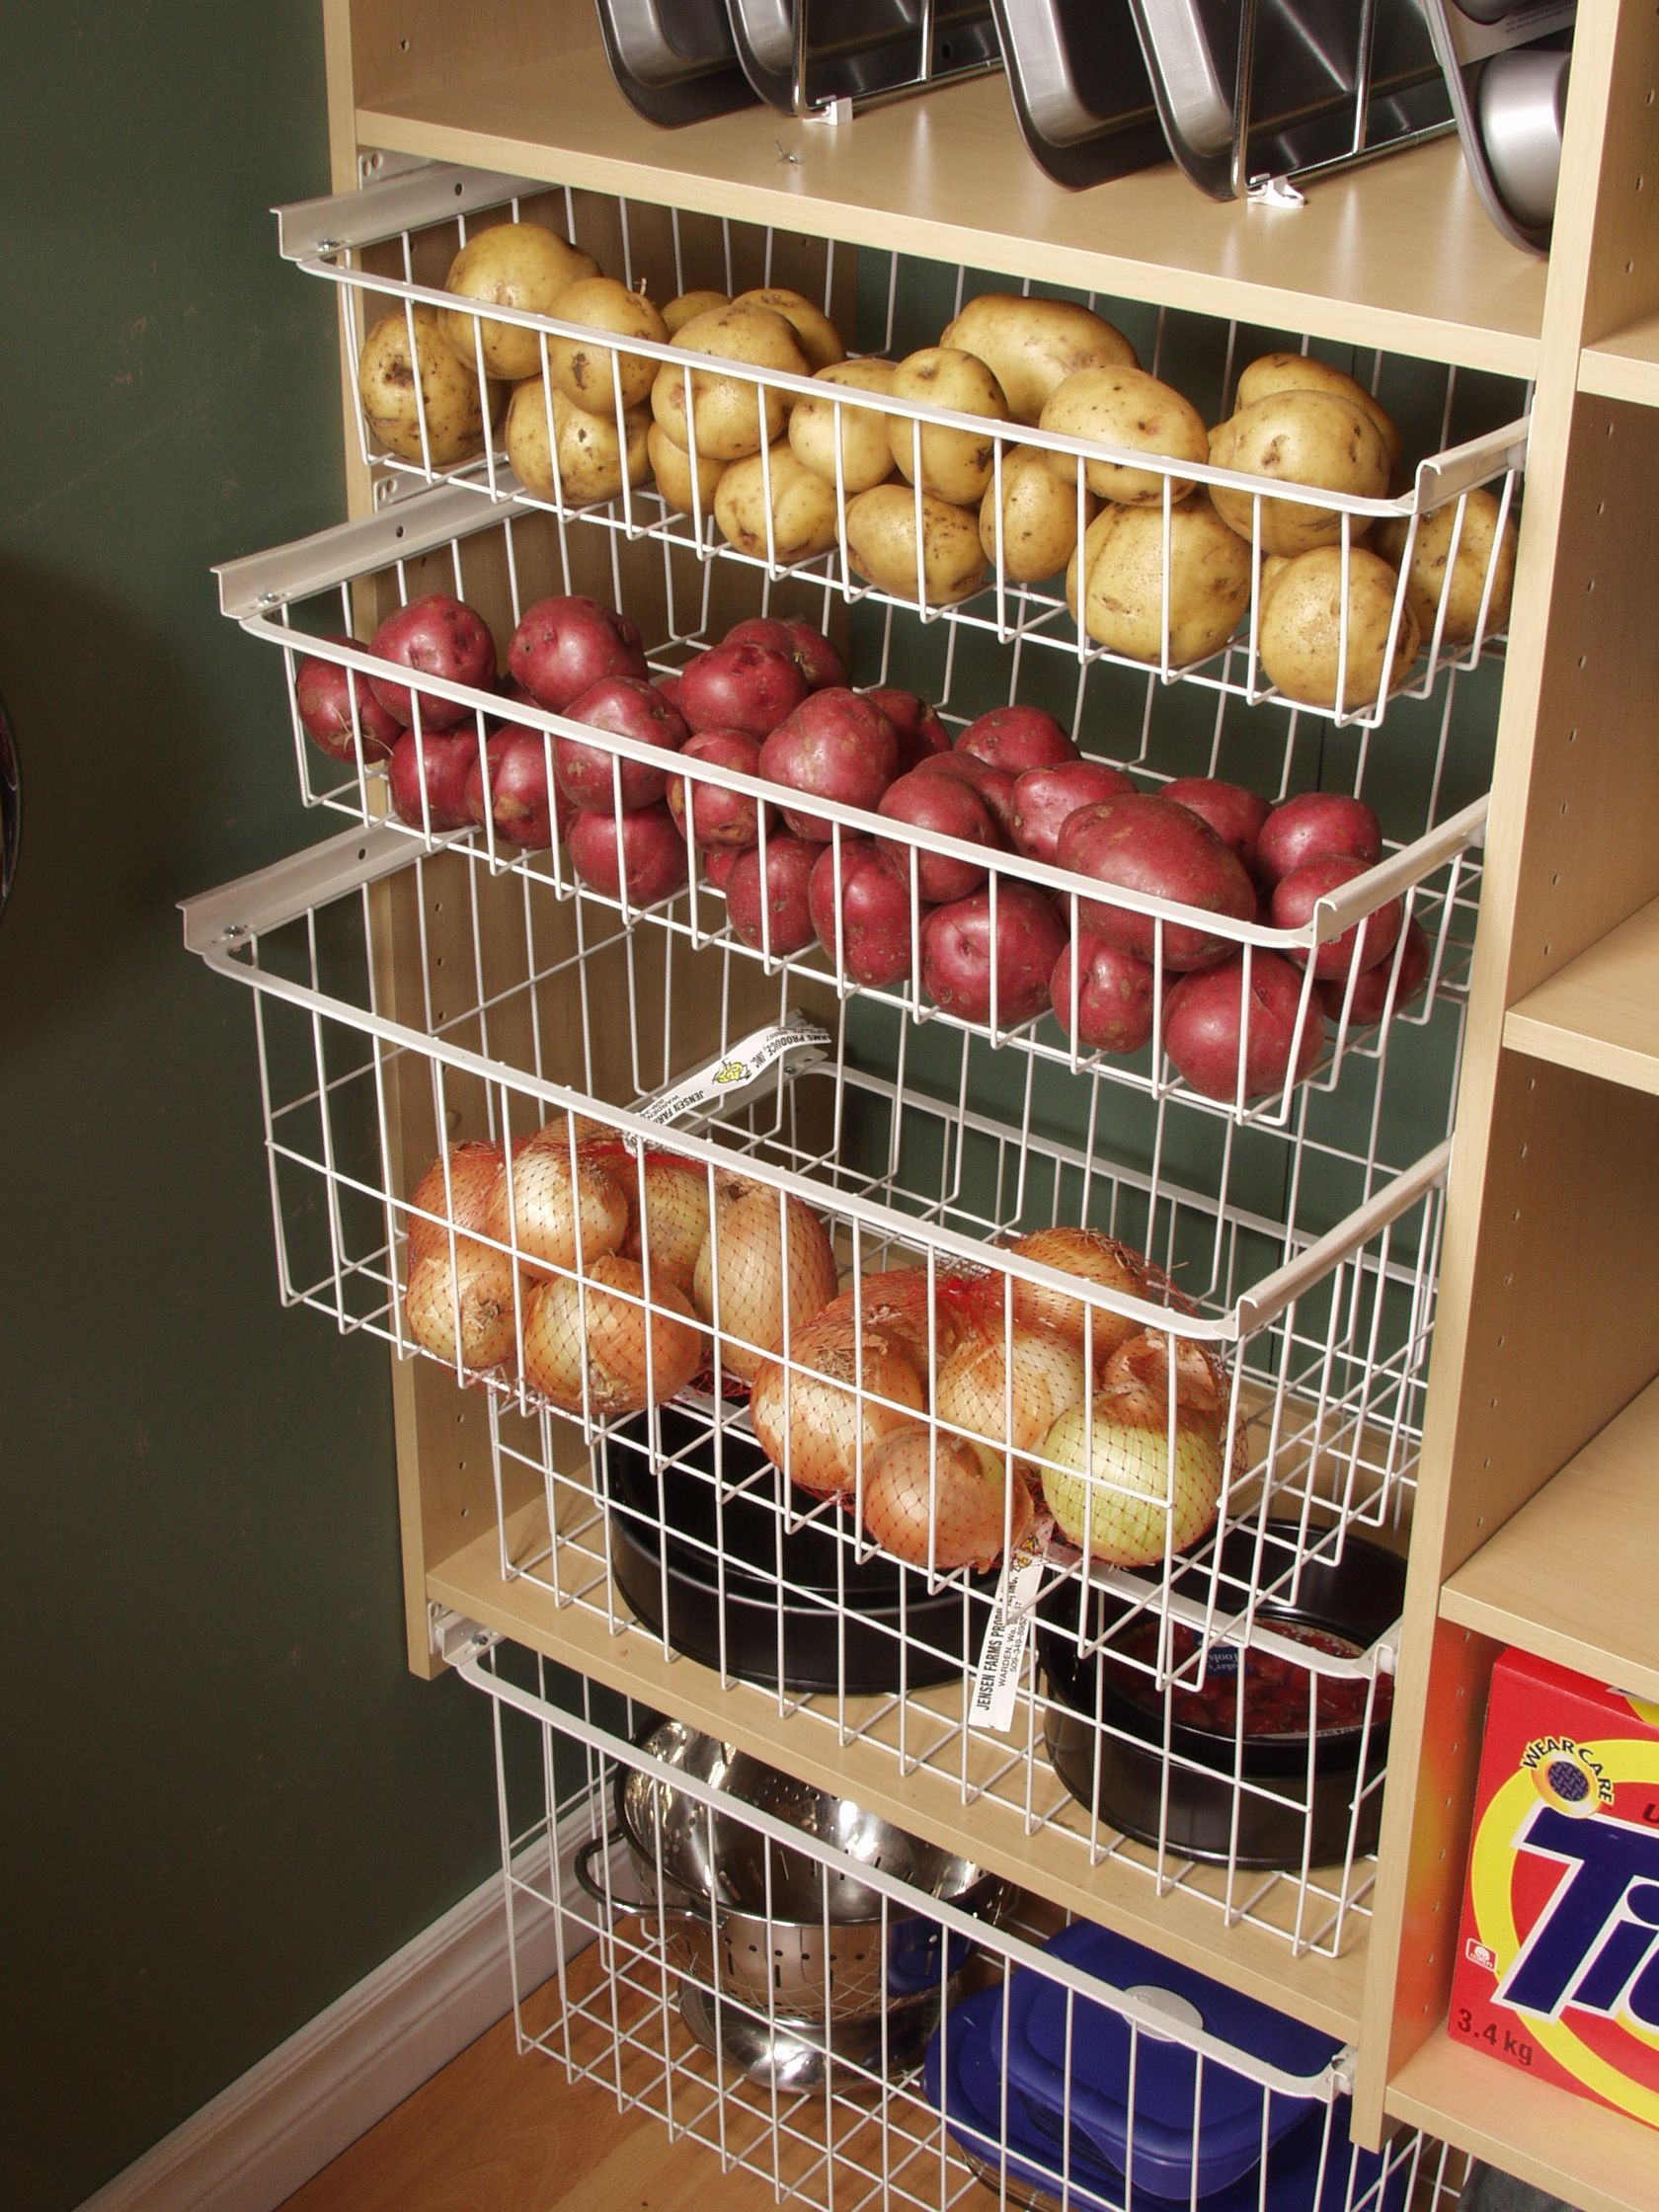 Pantry Slide Out Baskets For Vegetables